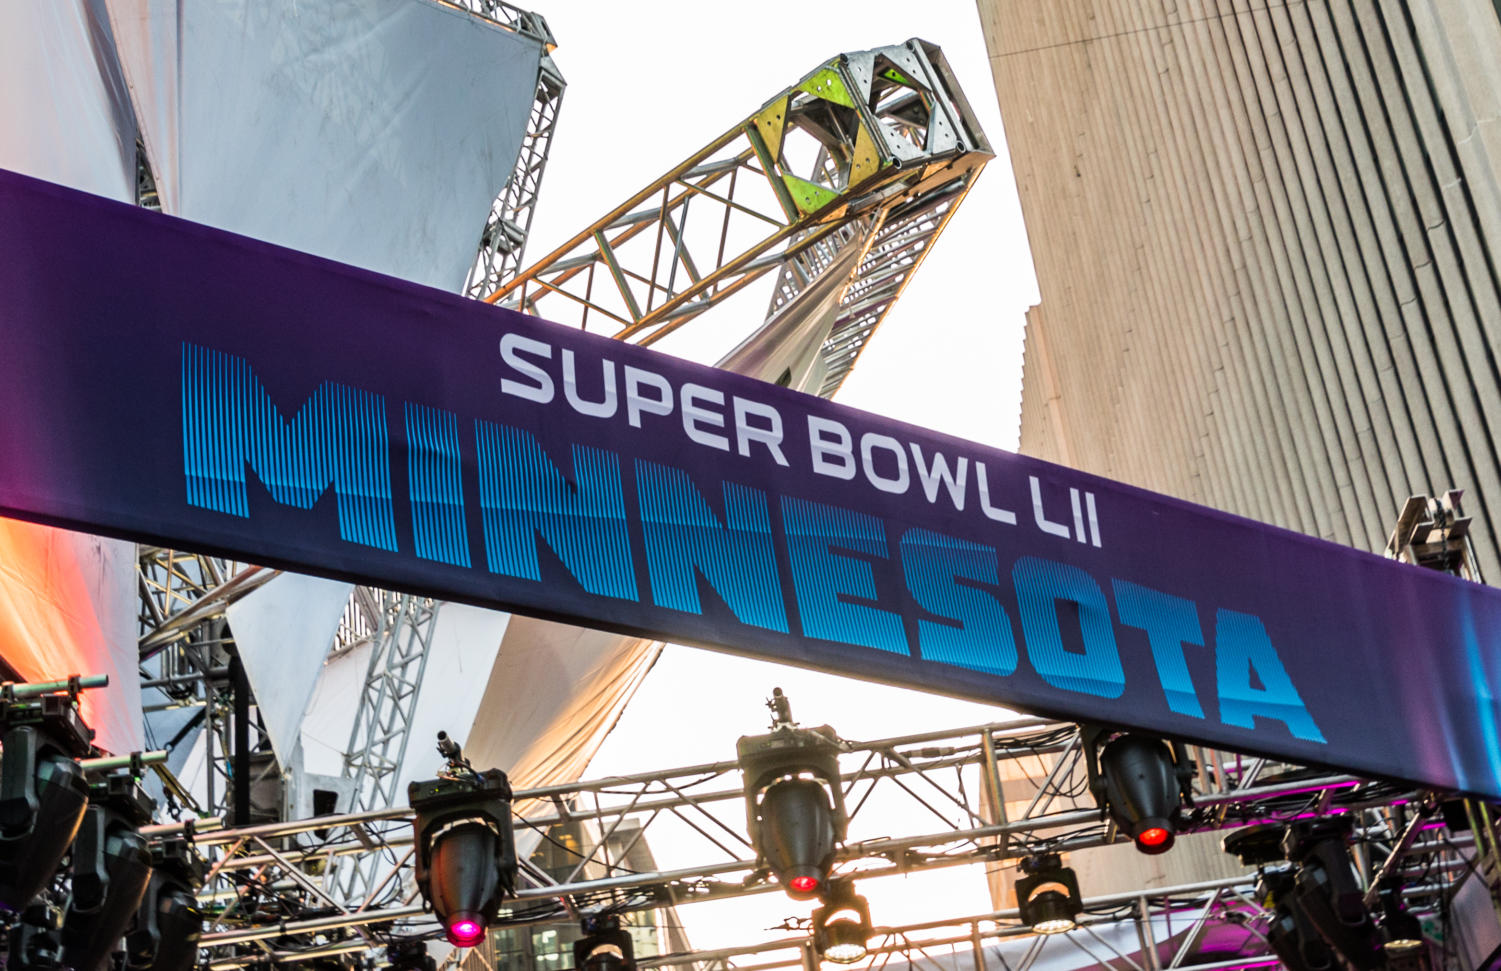 A banner for the 2018 Super Bowl 52 (Super Bowl LII) on Nicollet Mall in downtown Minneapolis, Minnesota.